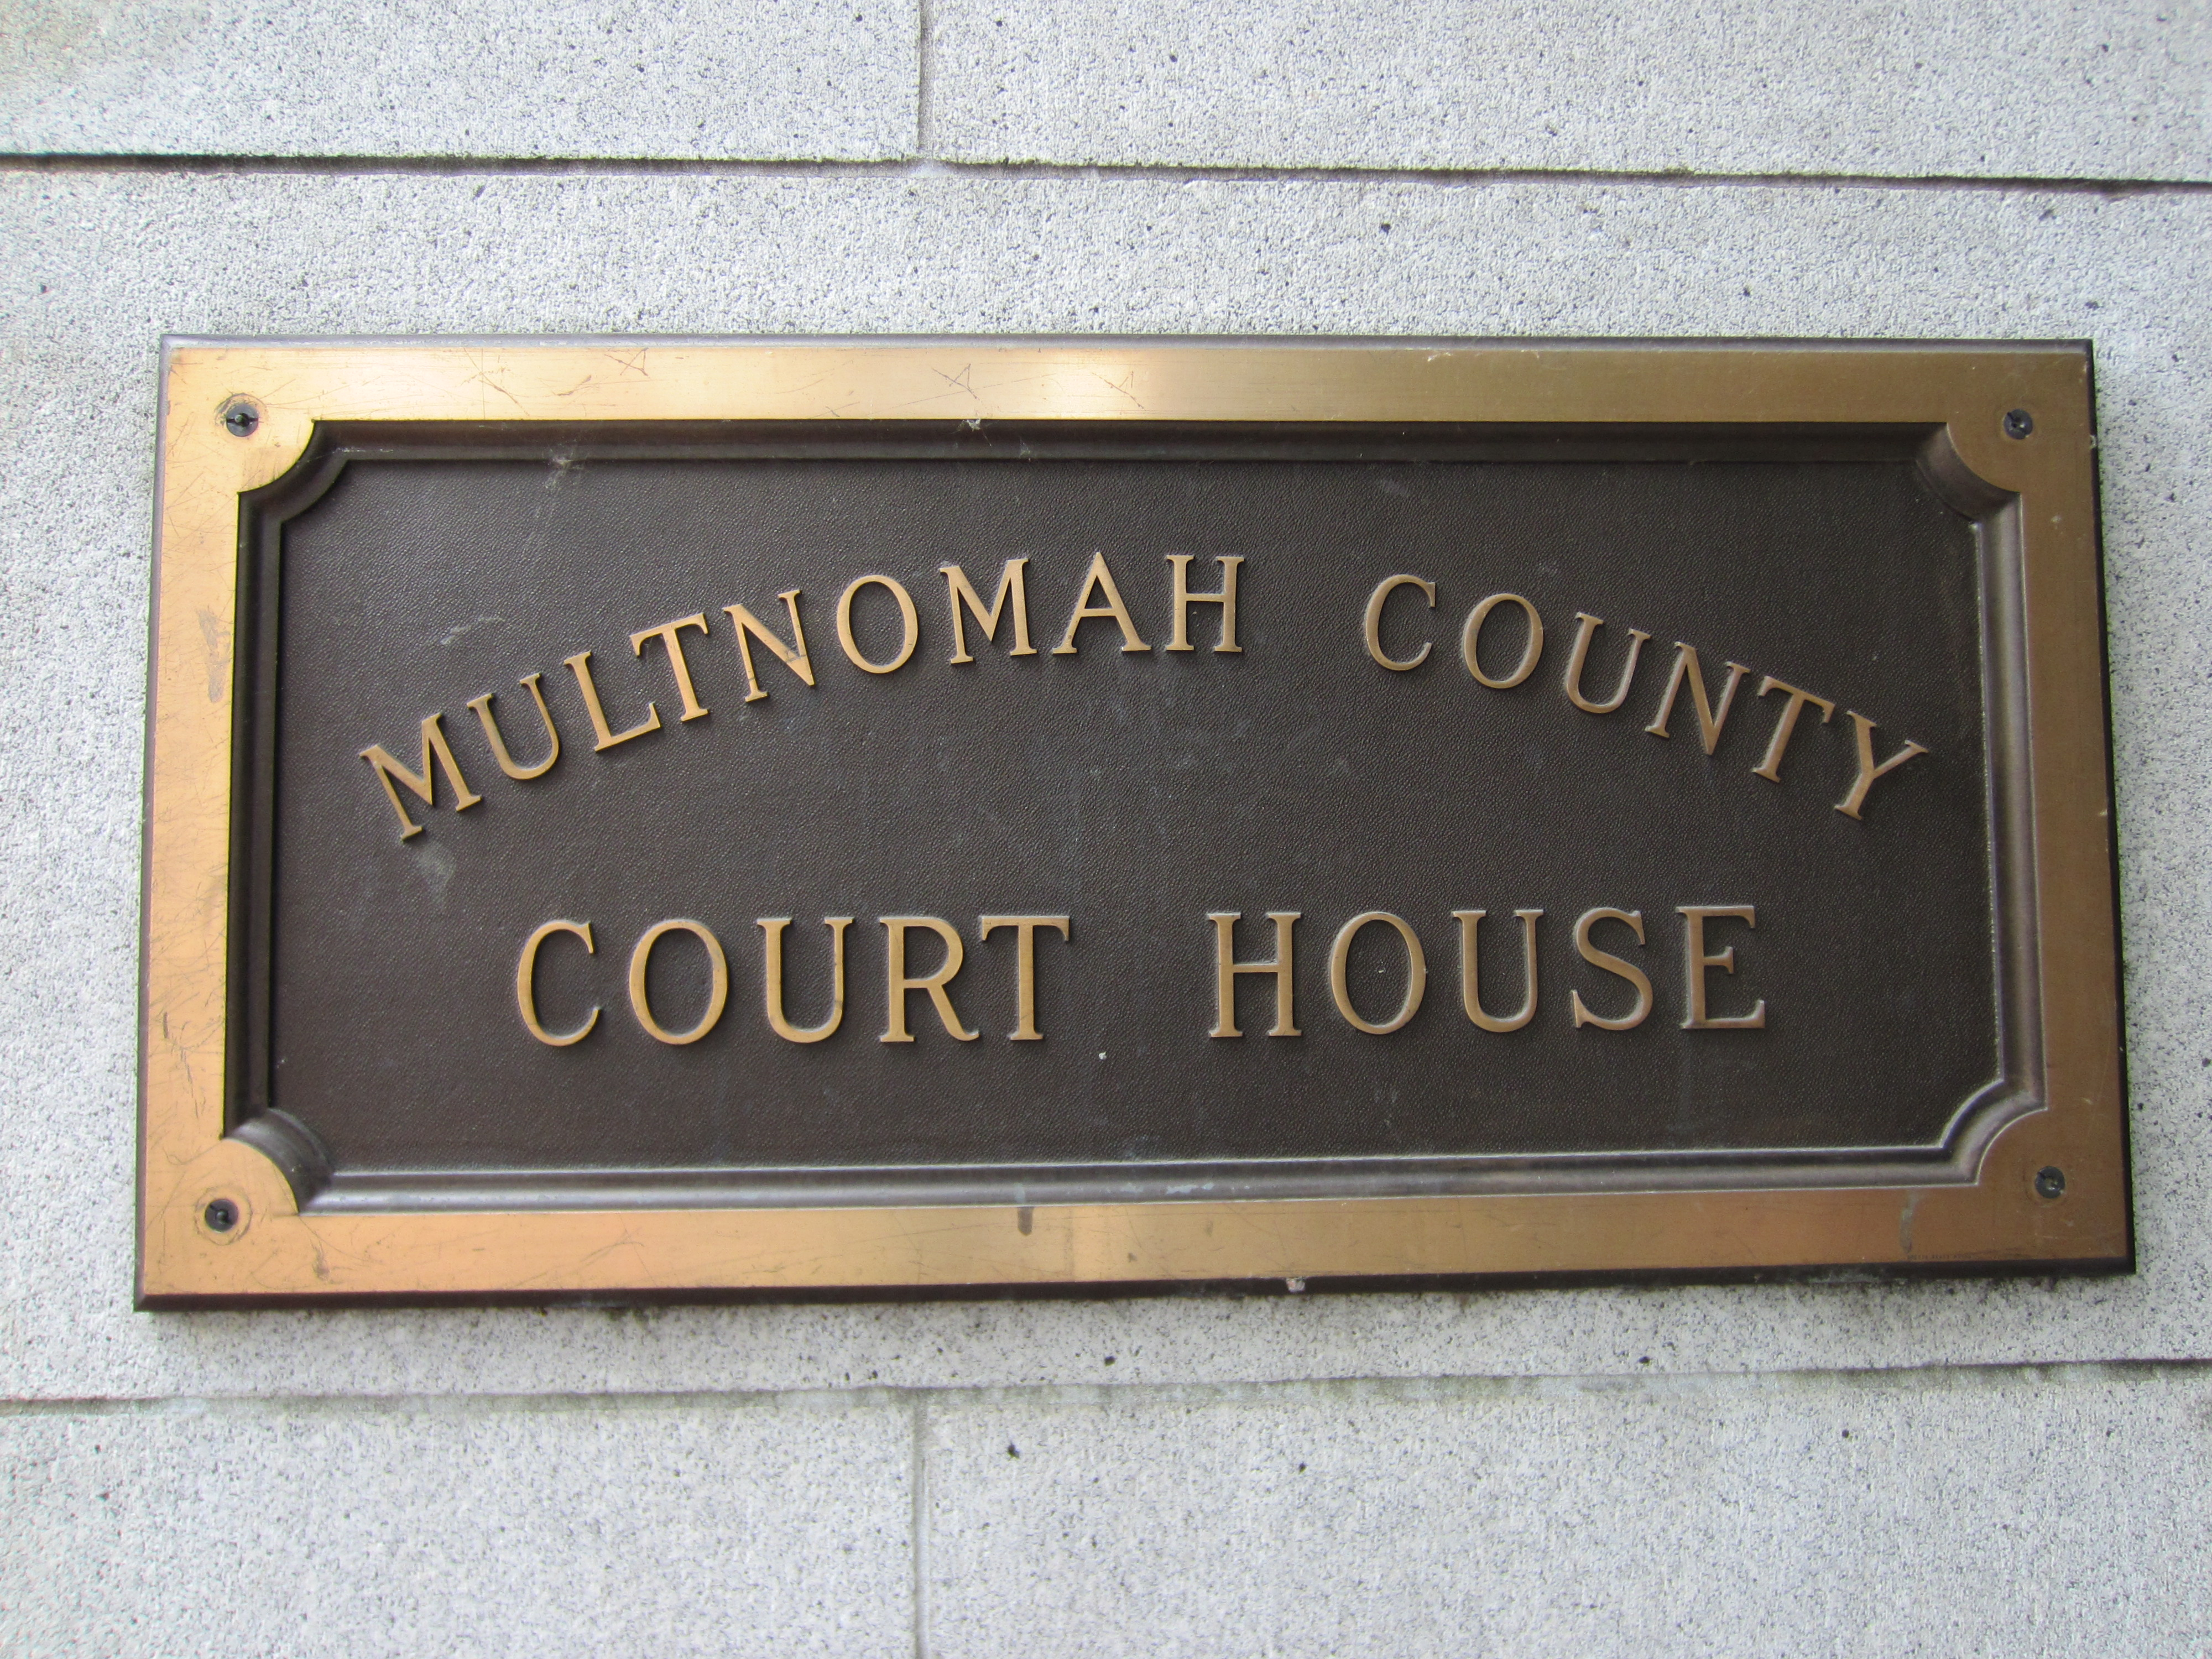 $15 minimum wage for Multnomah County employees in 2016